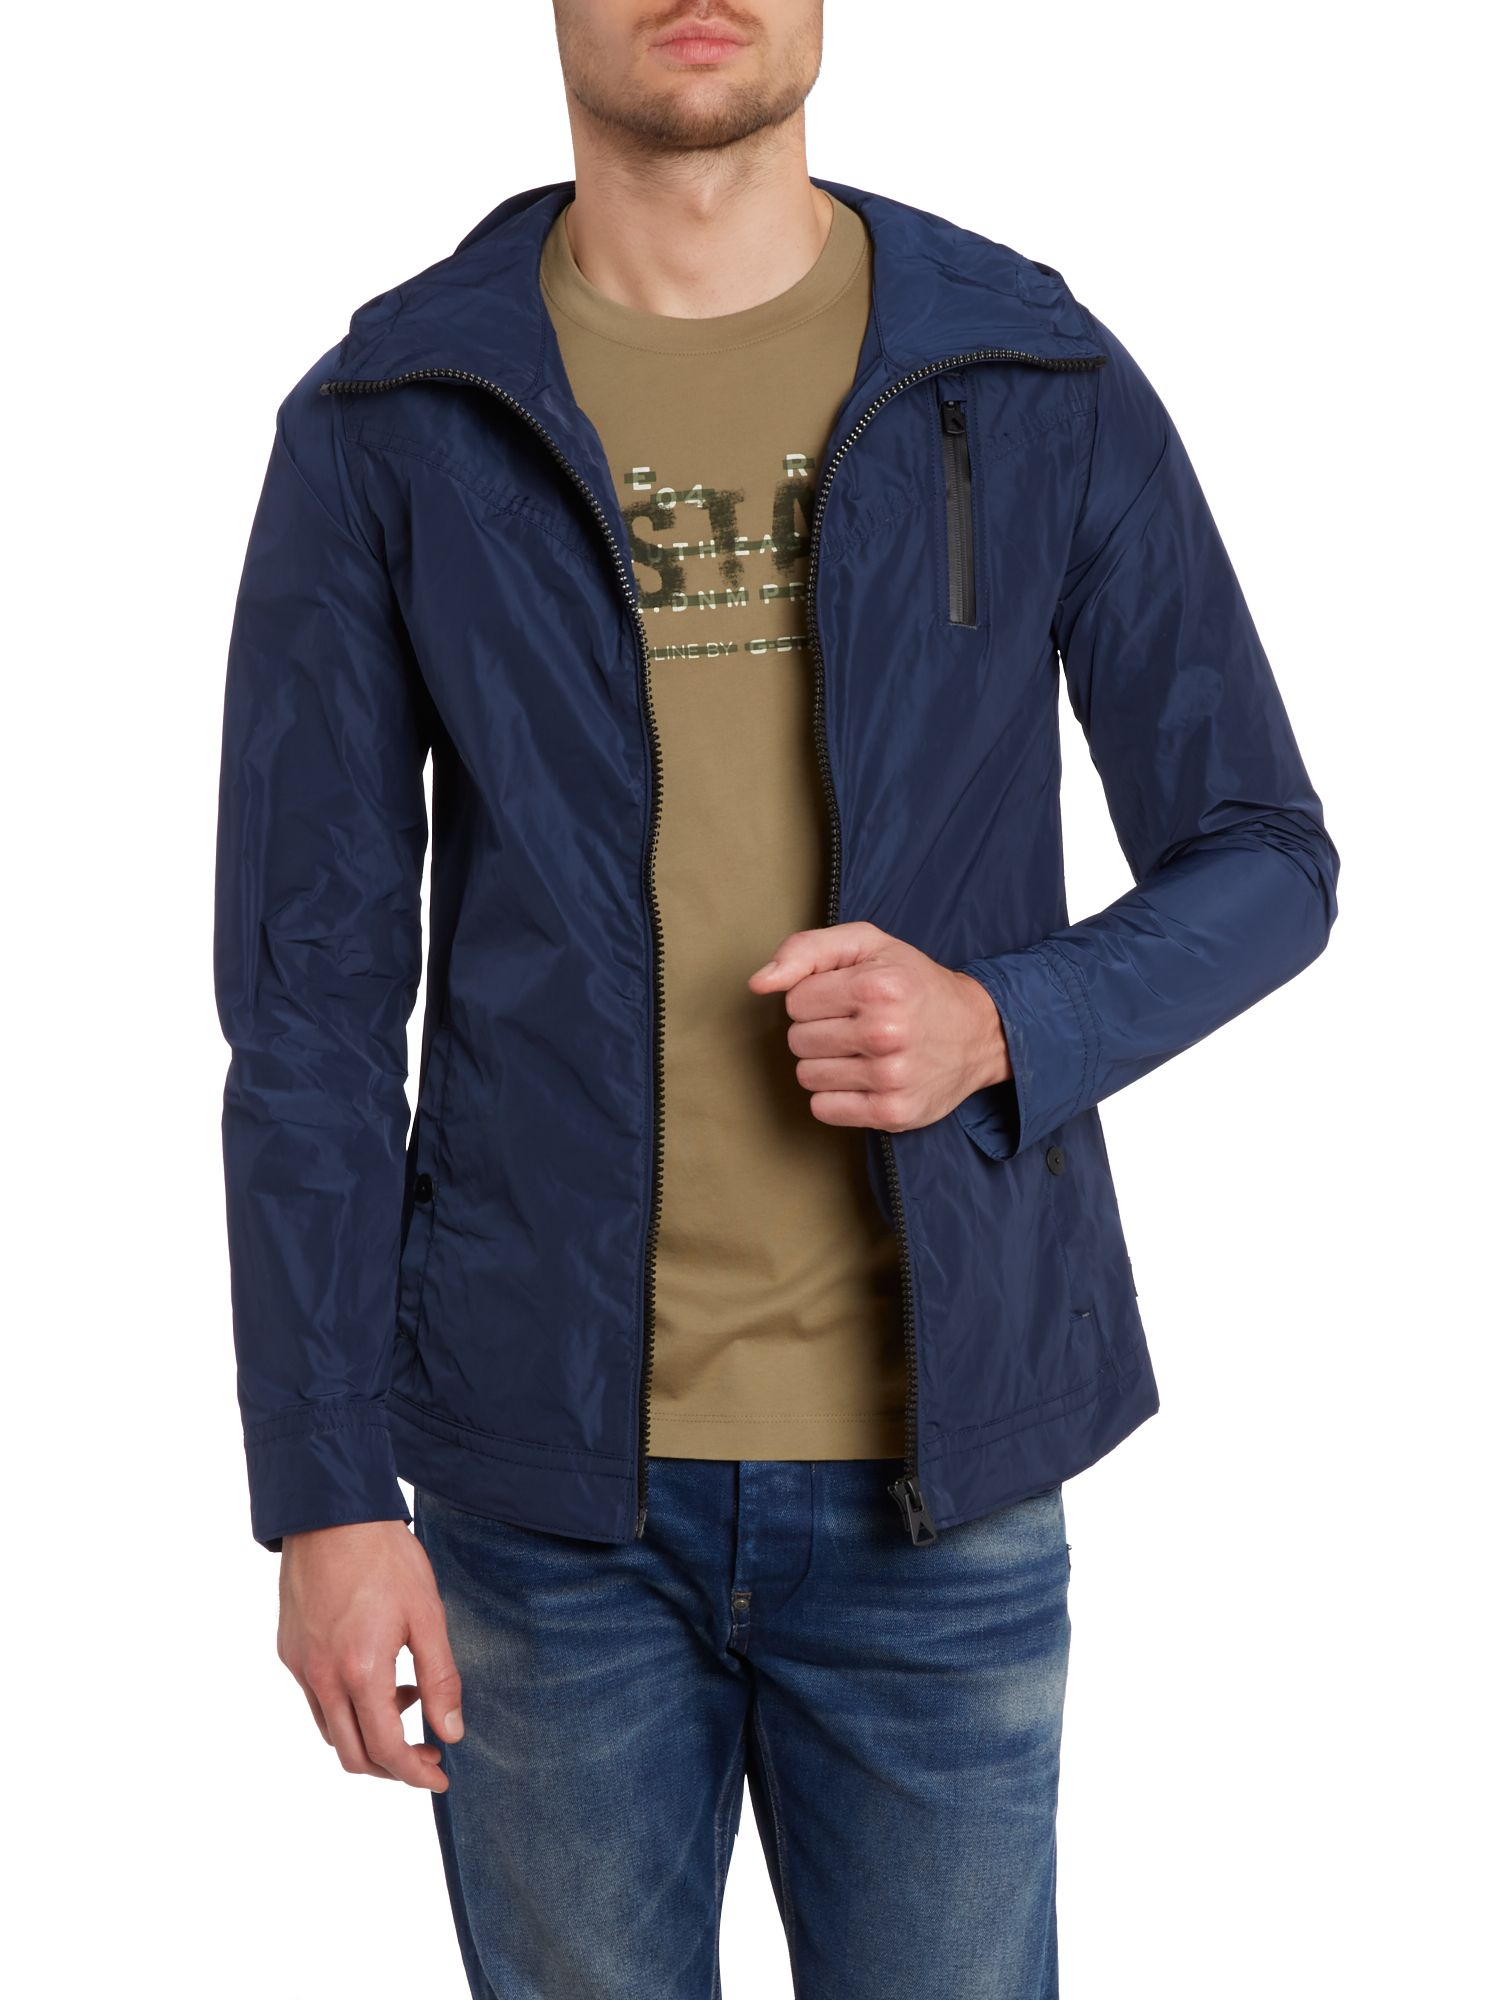 Hooded 3 pocket zip up nylon jacket